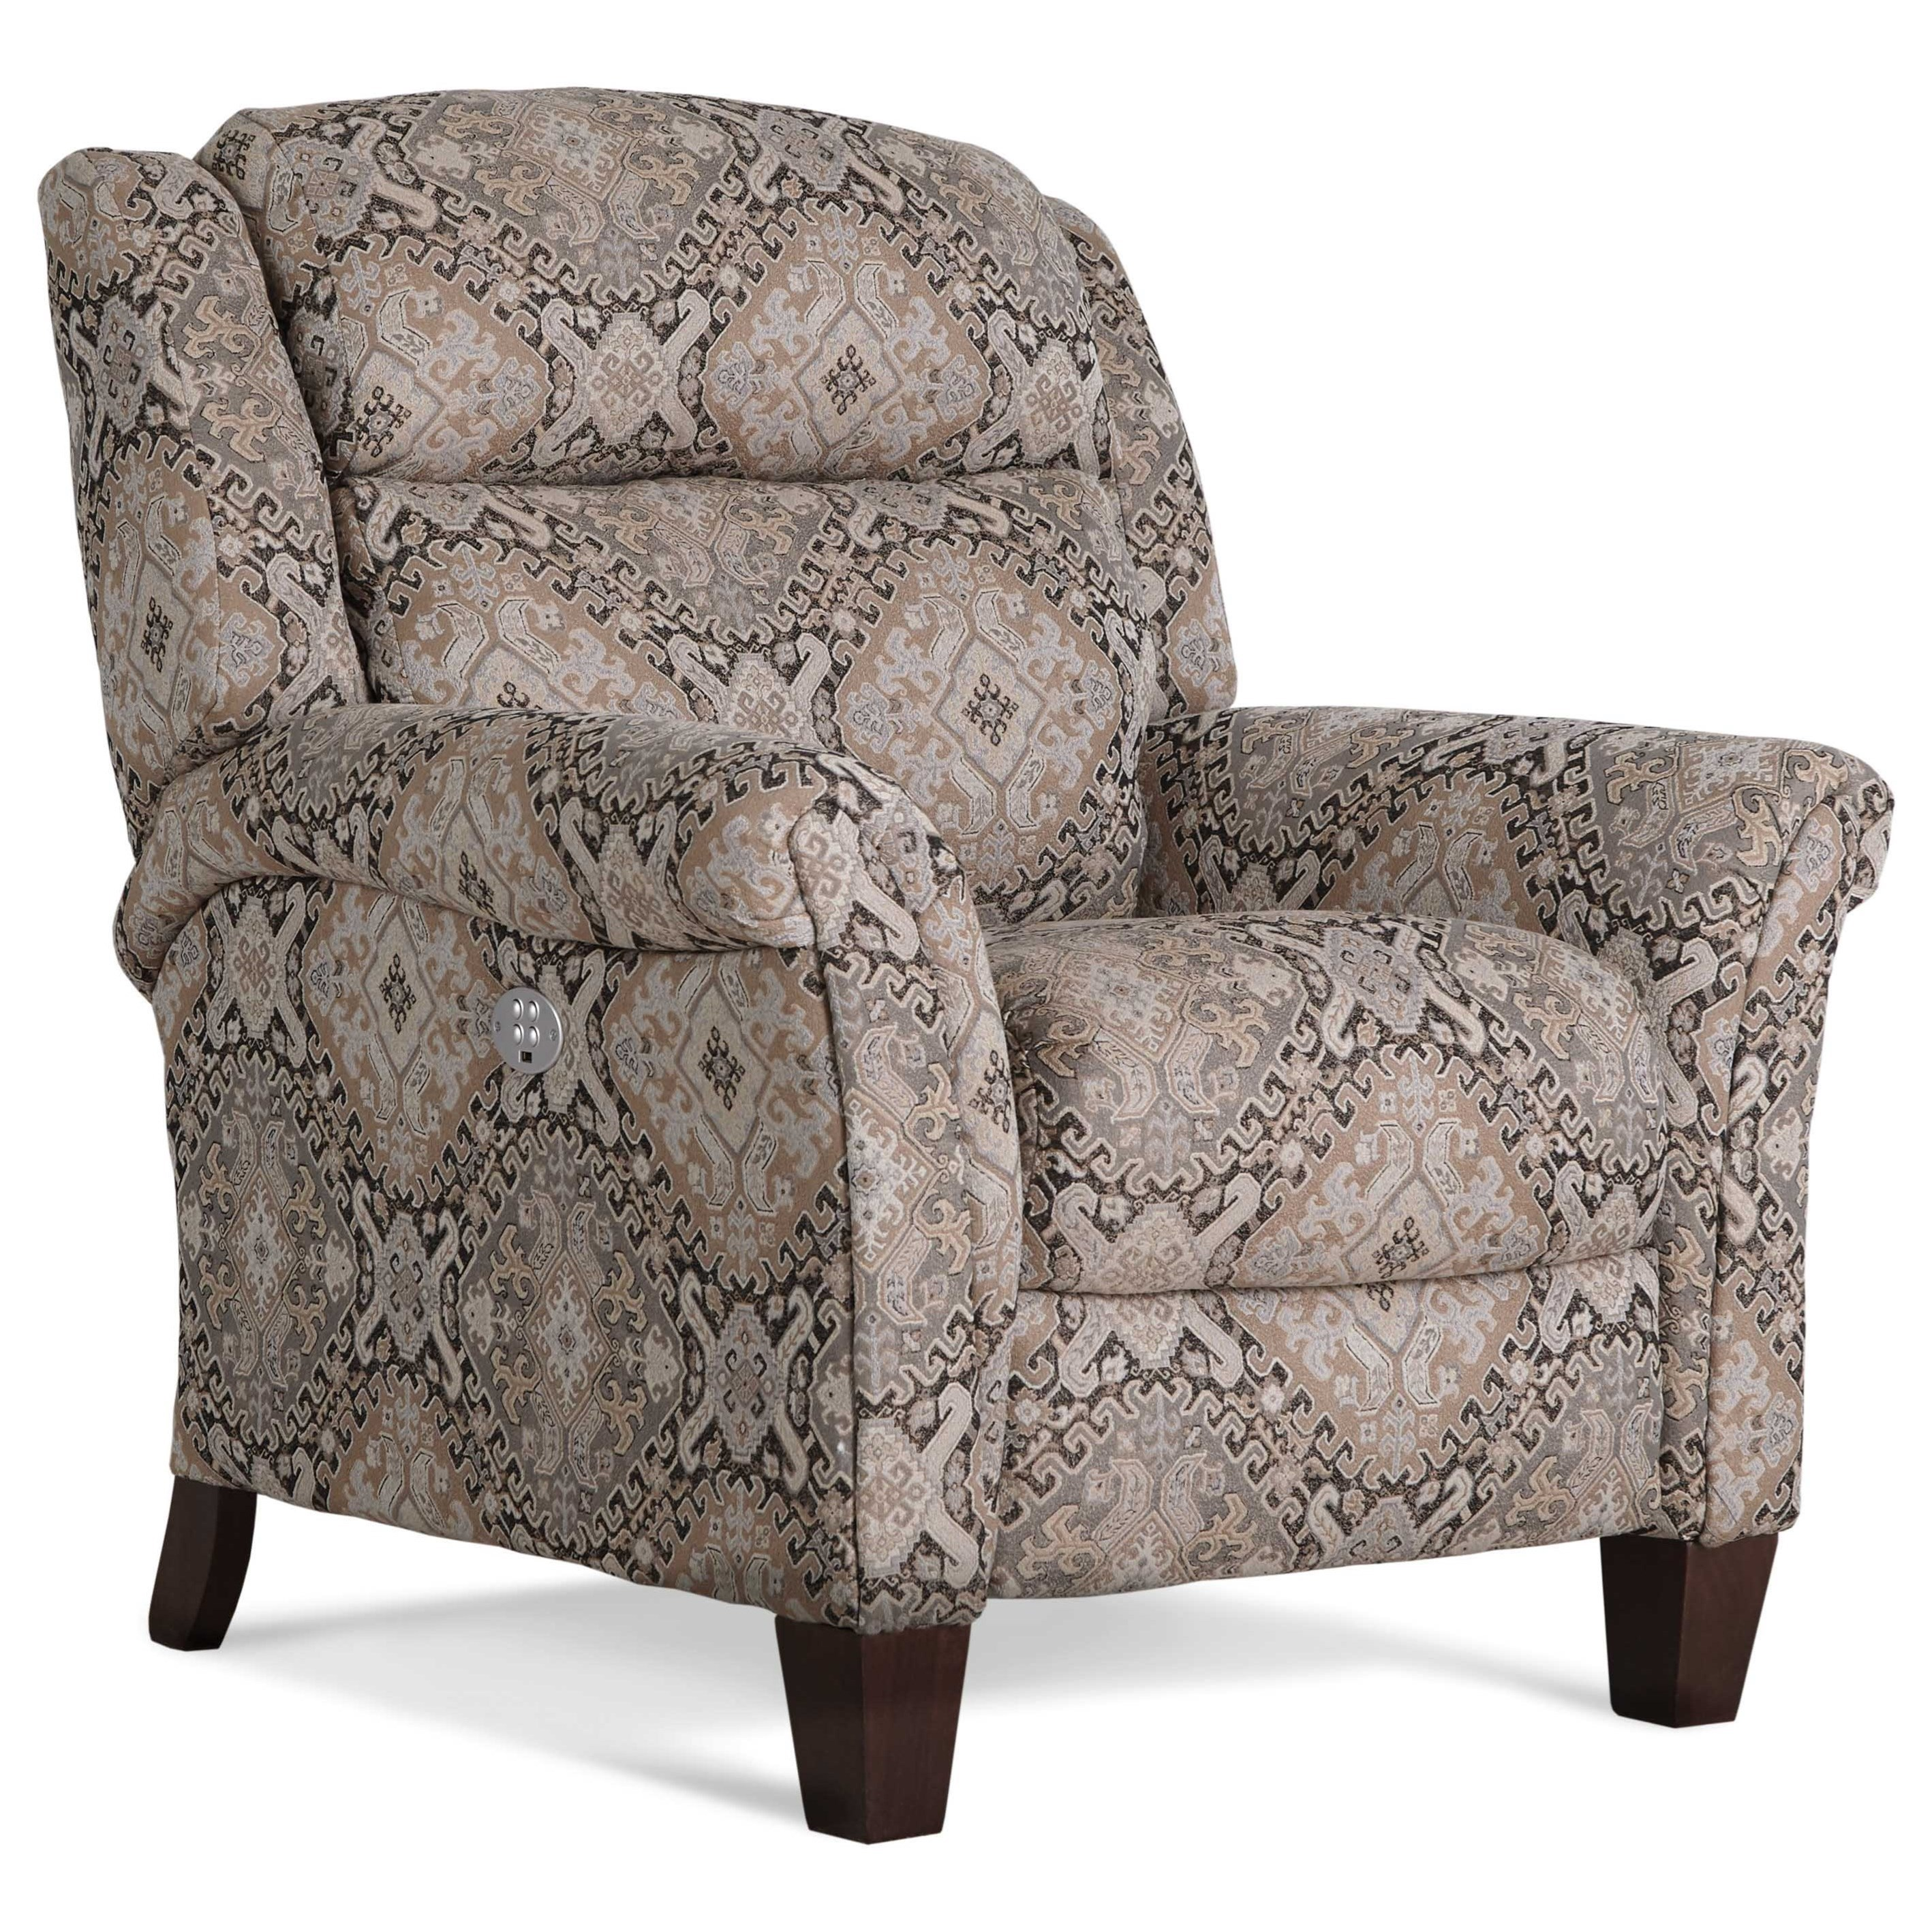 Pow Wow High Leg Recliner by Southern Motion at H.L. Stephens